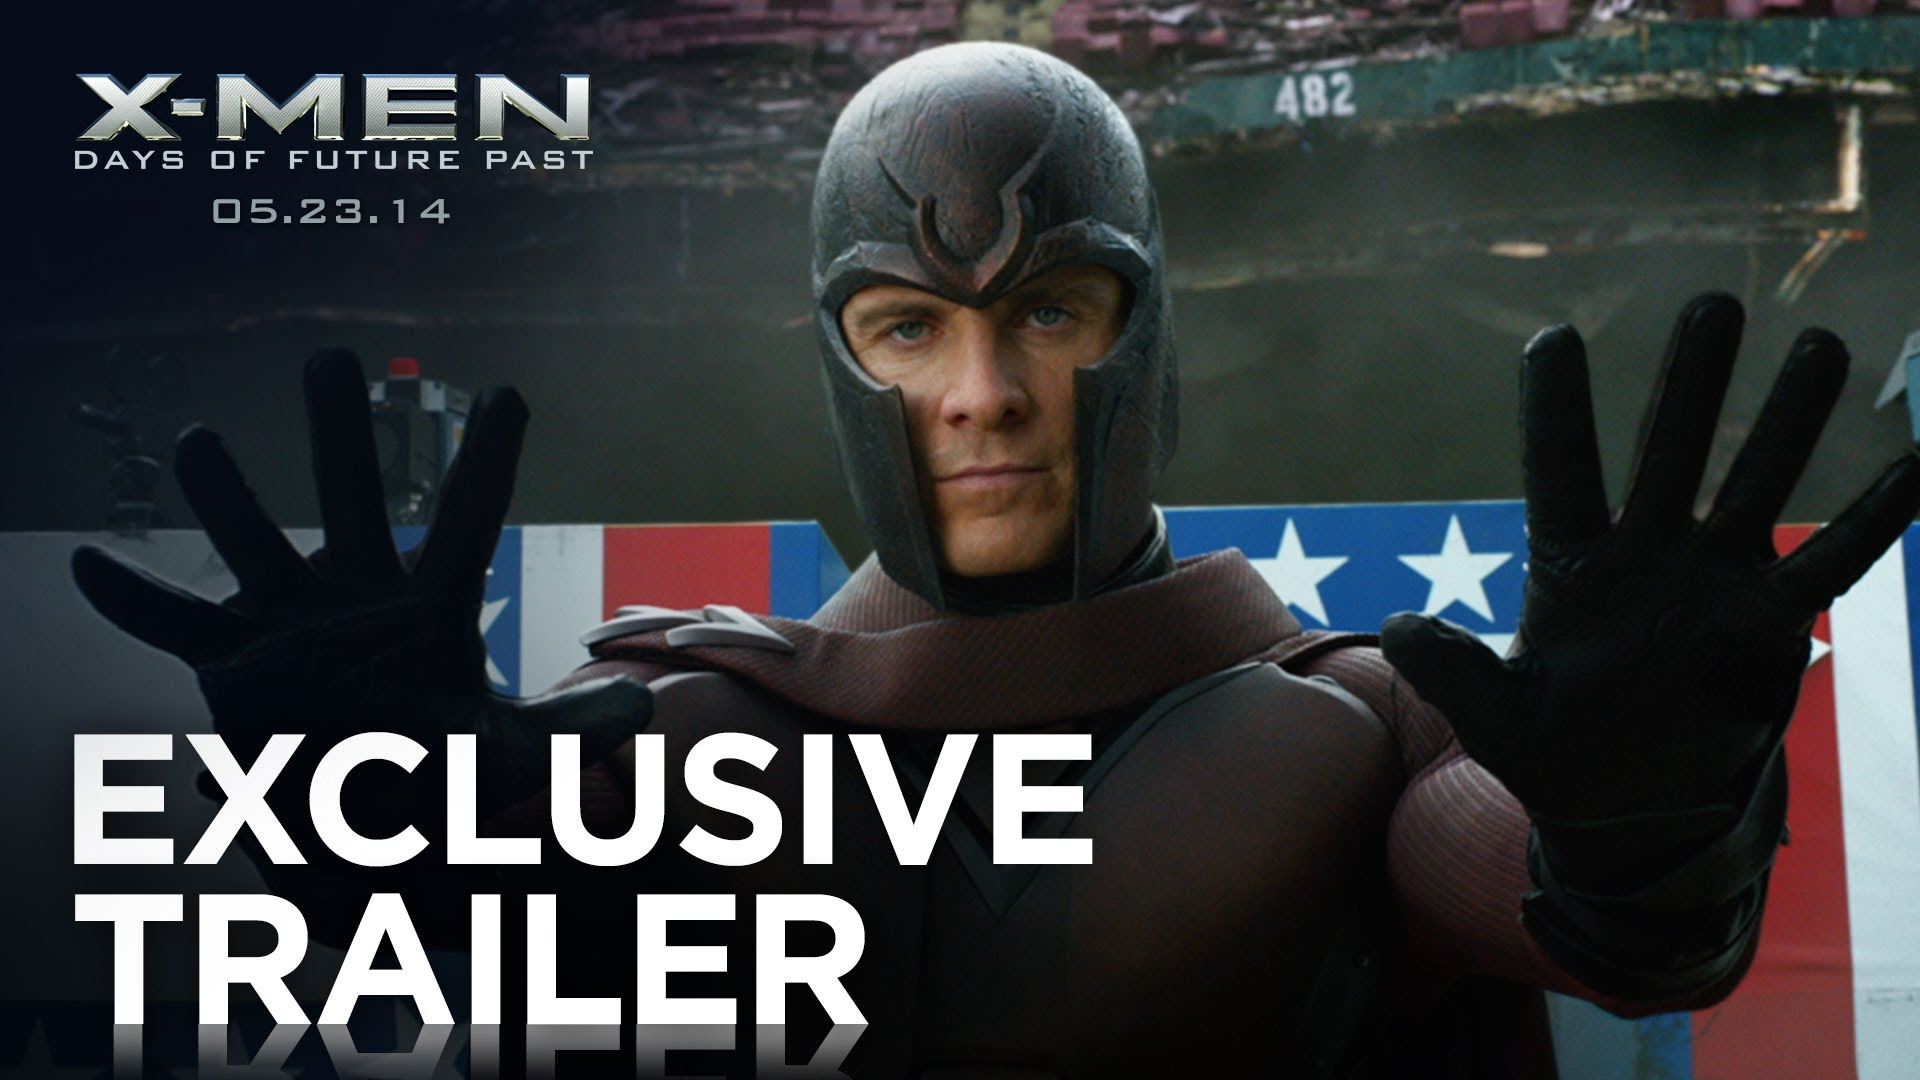 Zweiter Trailer: X‑MEN – DAYS OF FUTURE PAST